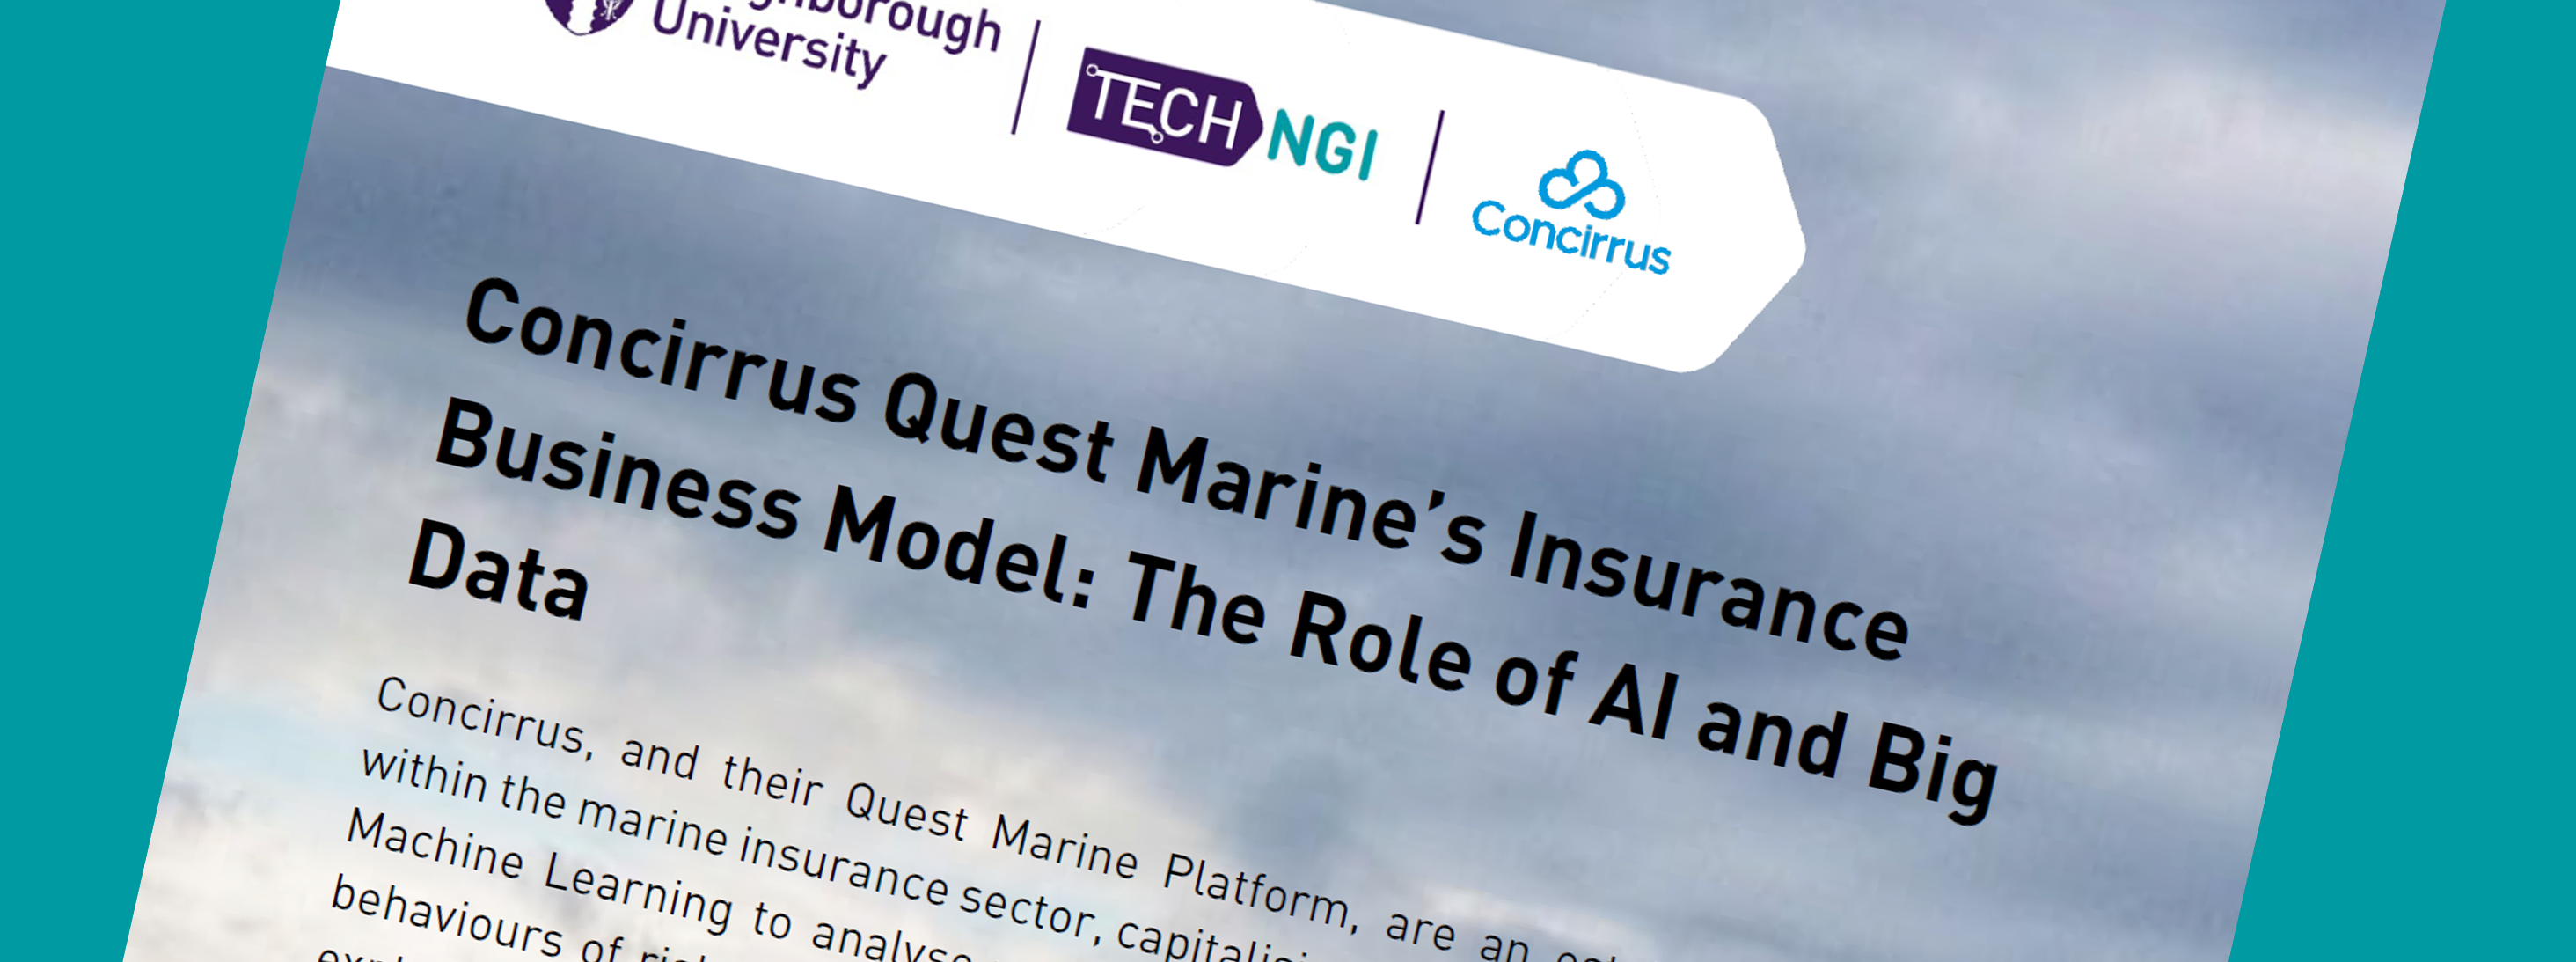 Concirrus Quest Marine's Insurance Business Model: The Role of AI and Big Data